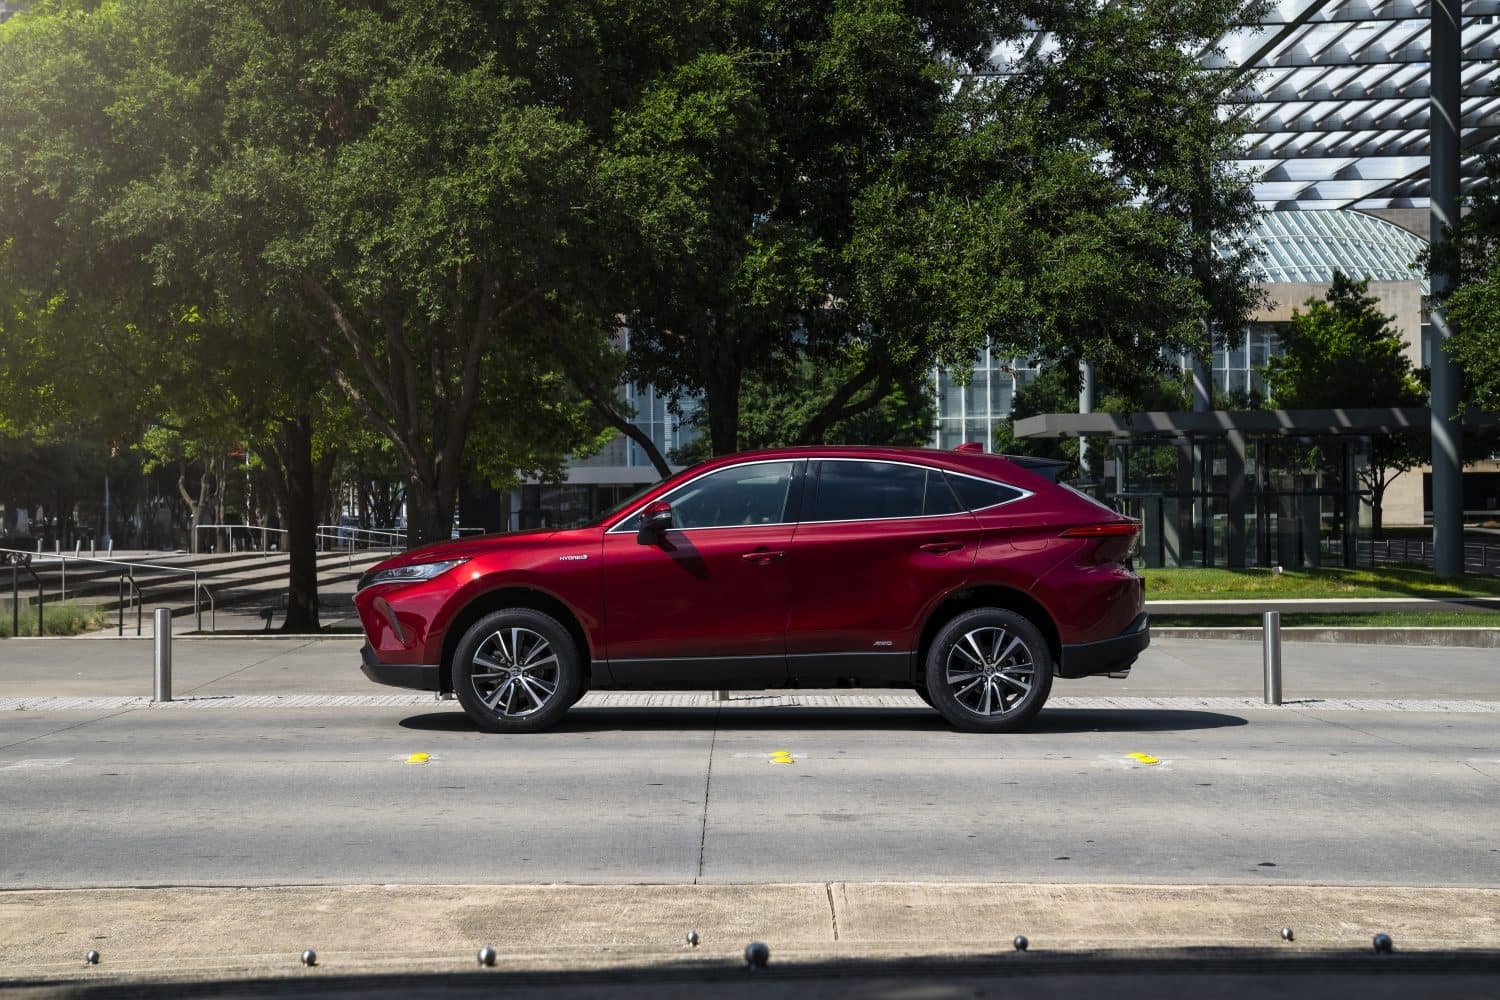 New Toyota Cars for Sale in Anchorage, AK